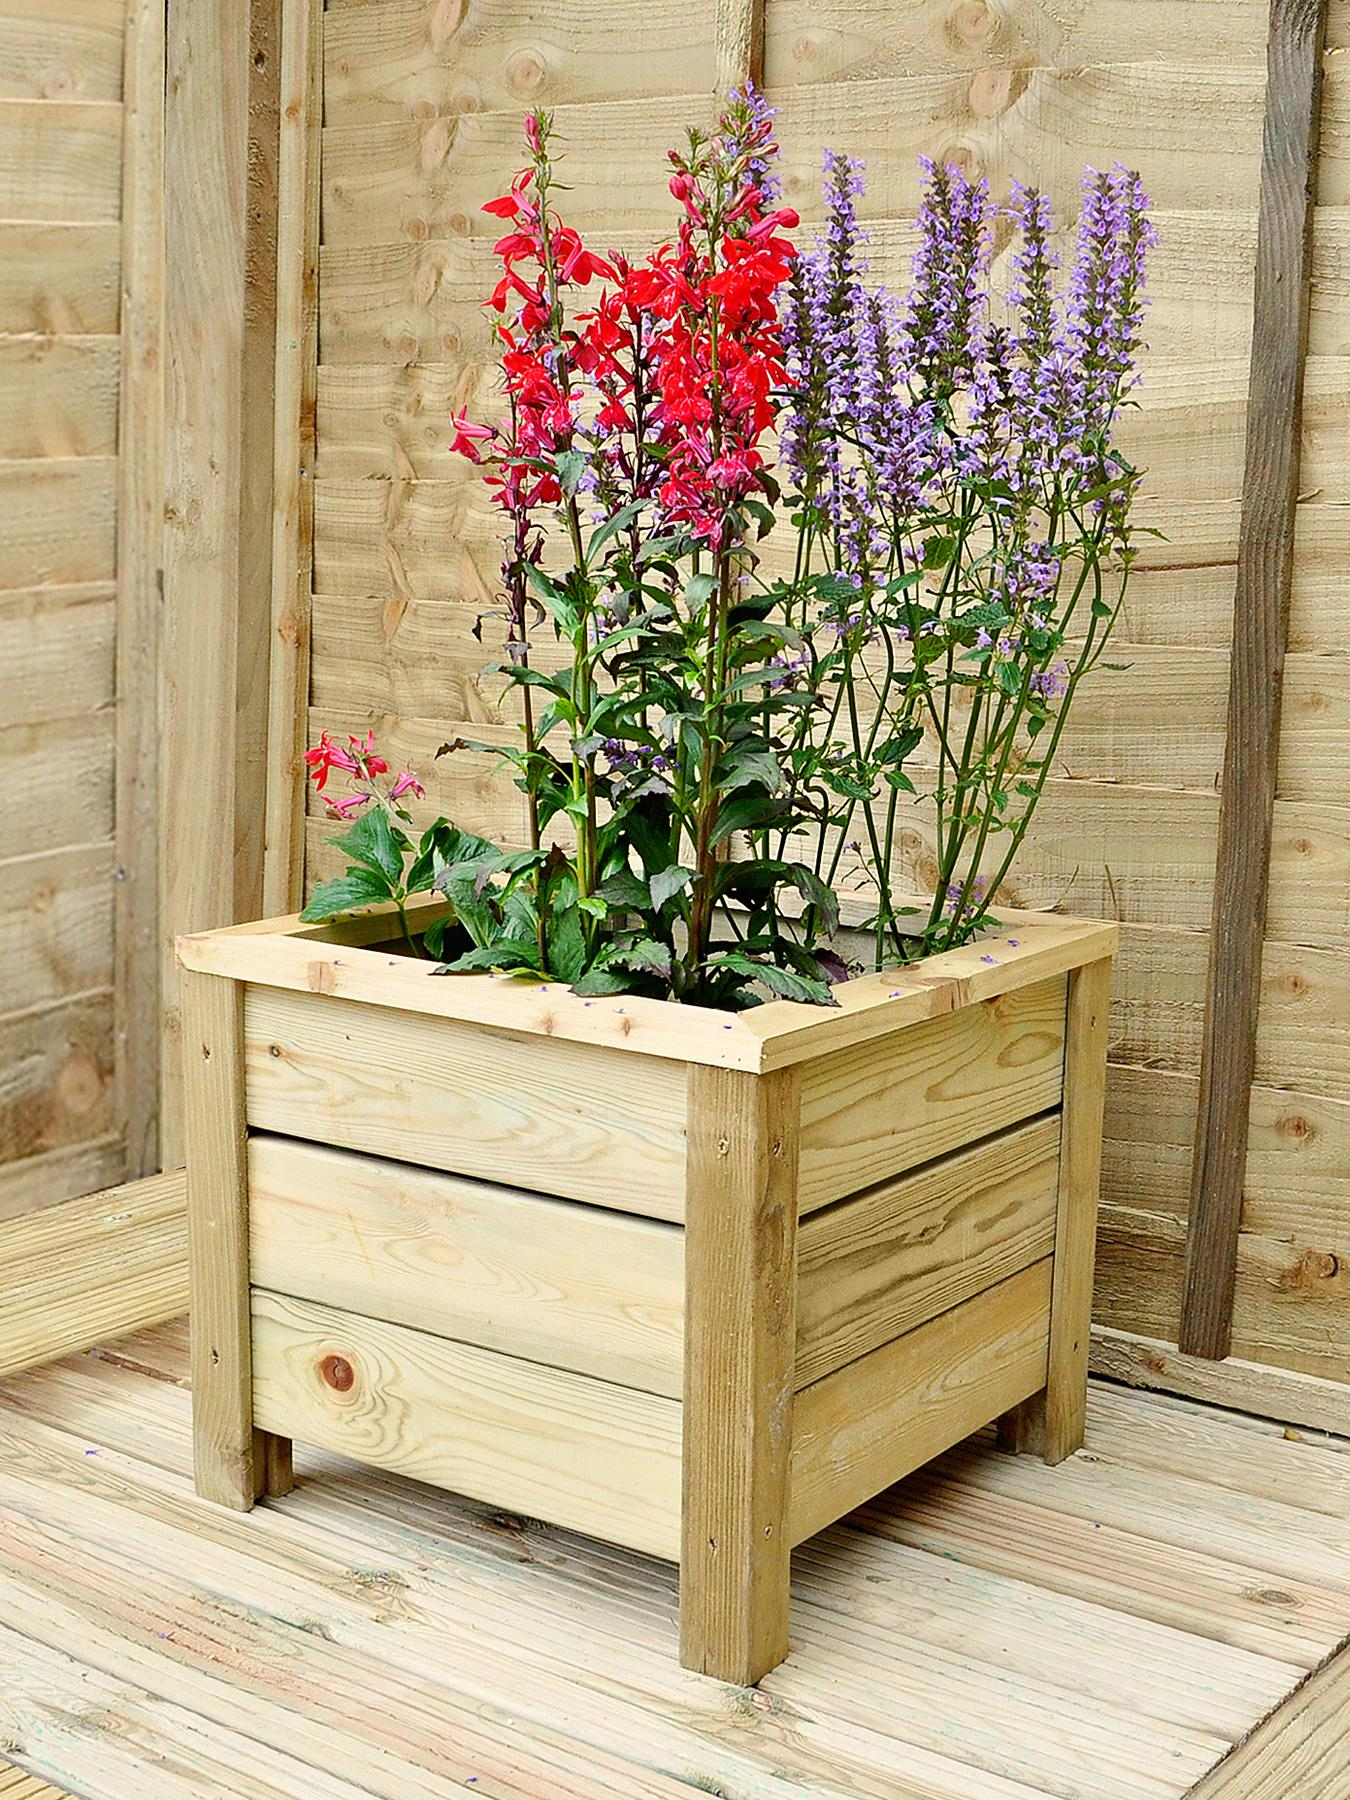 FOREST Garden Square Planter - Large